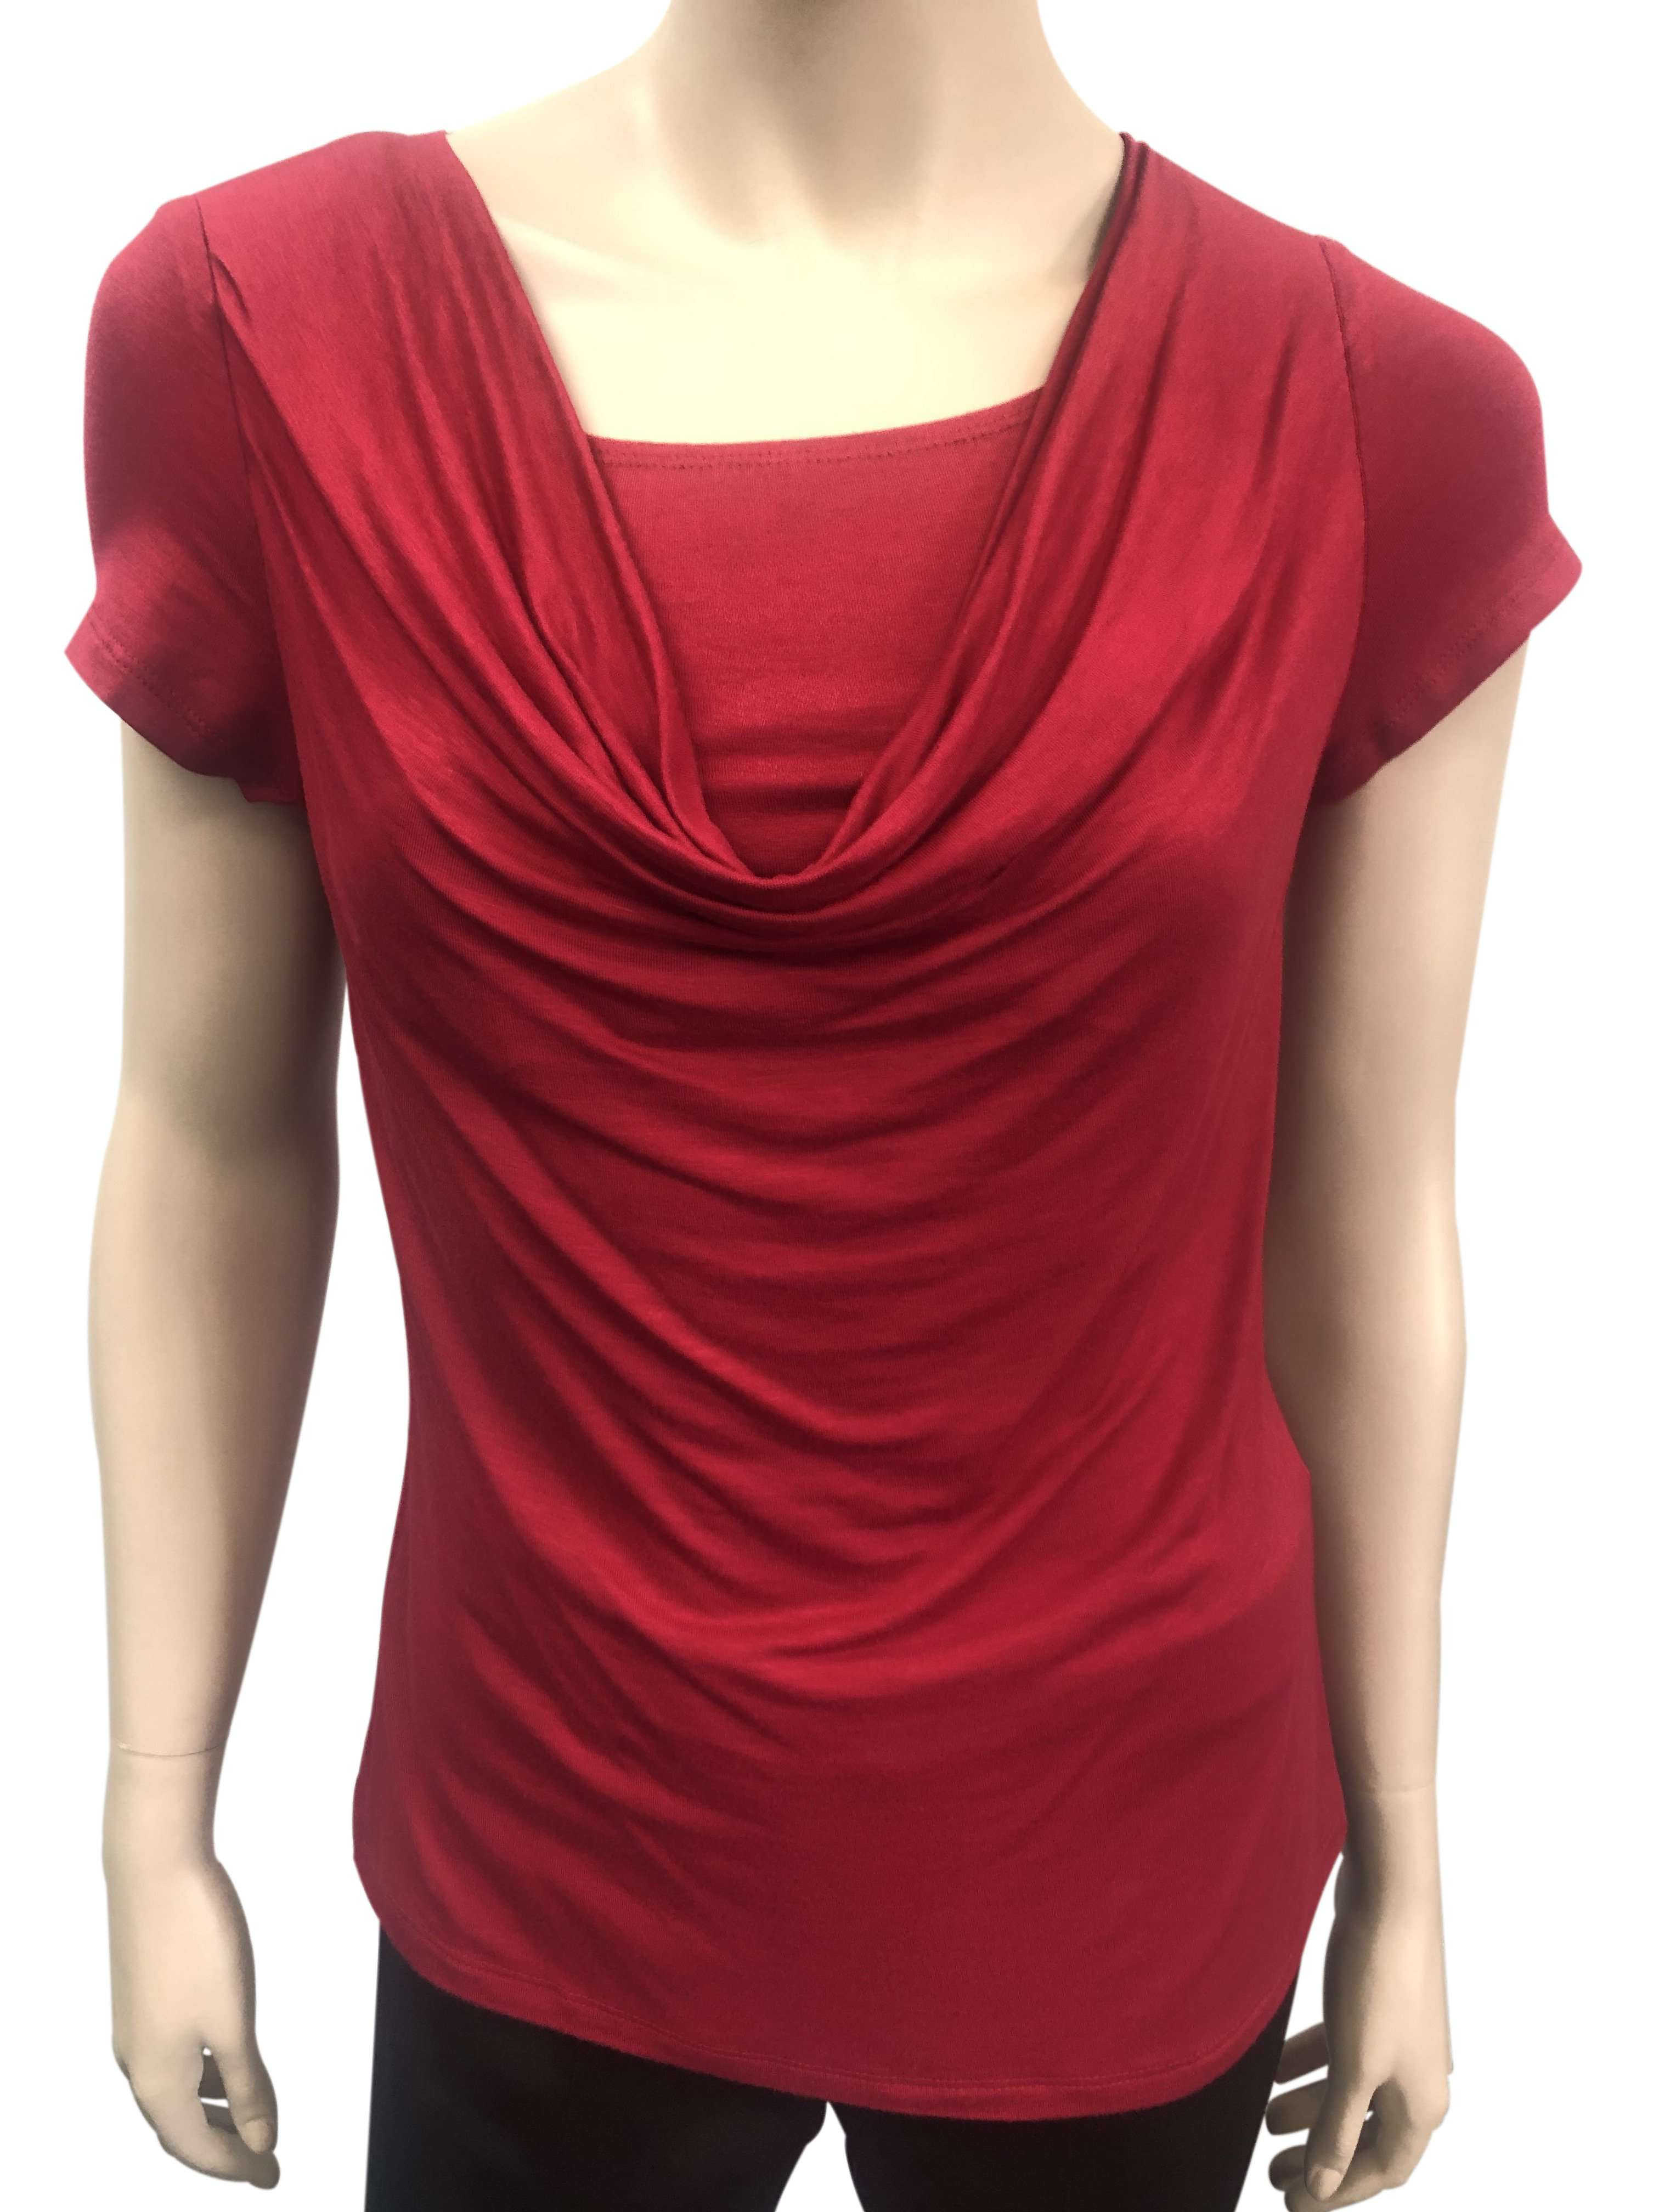 Women's Tops on Sale Canada | Red Short Sleeve Top | YM Style - Yvonne Marie